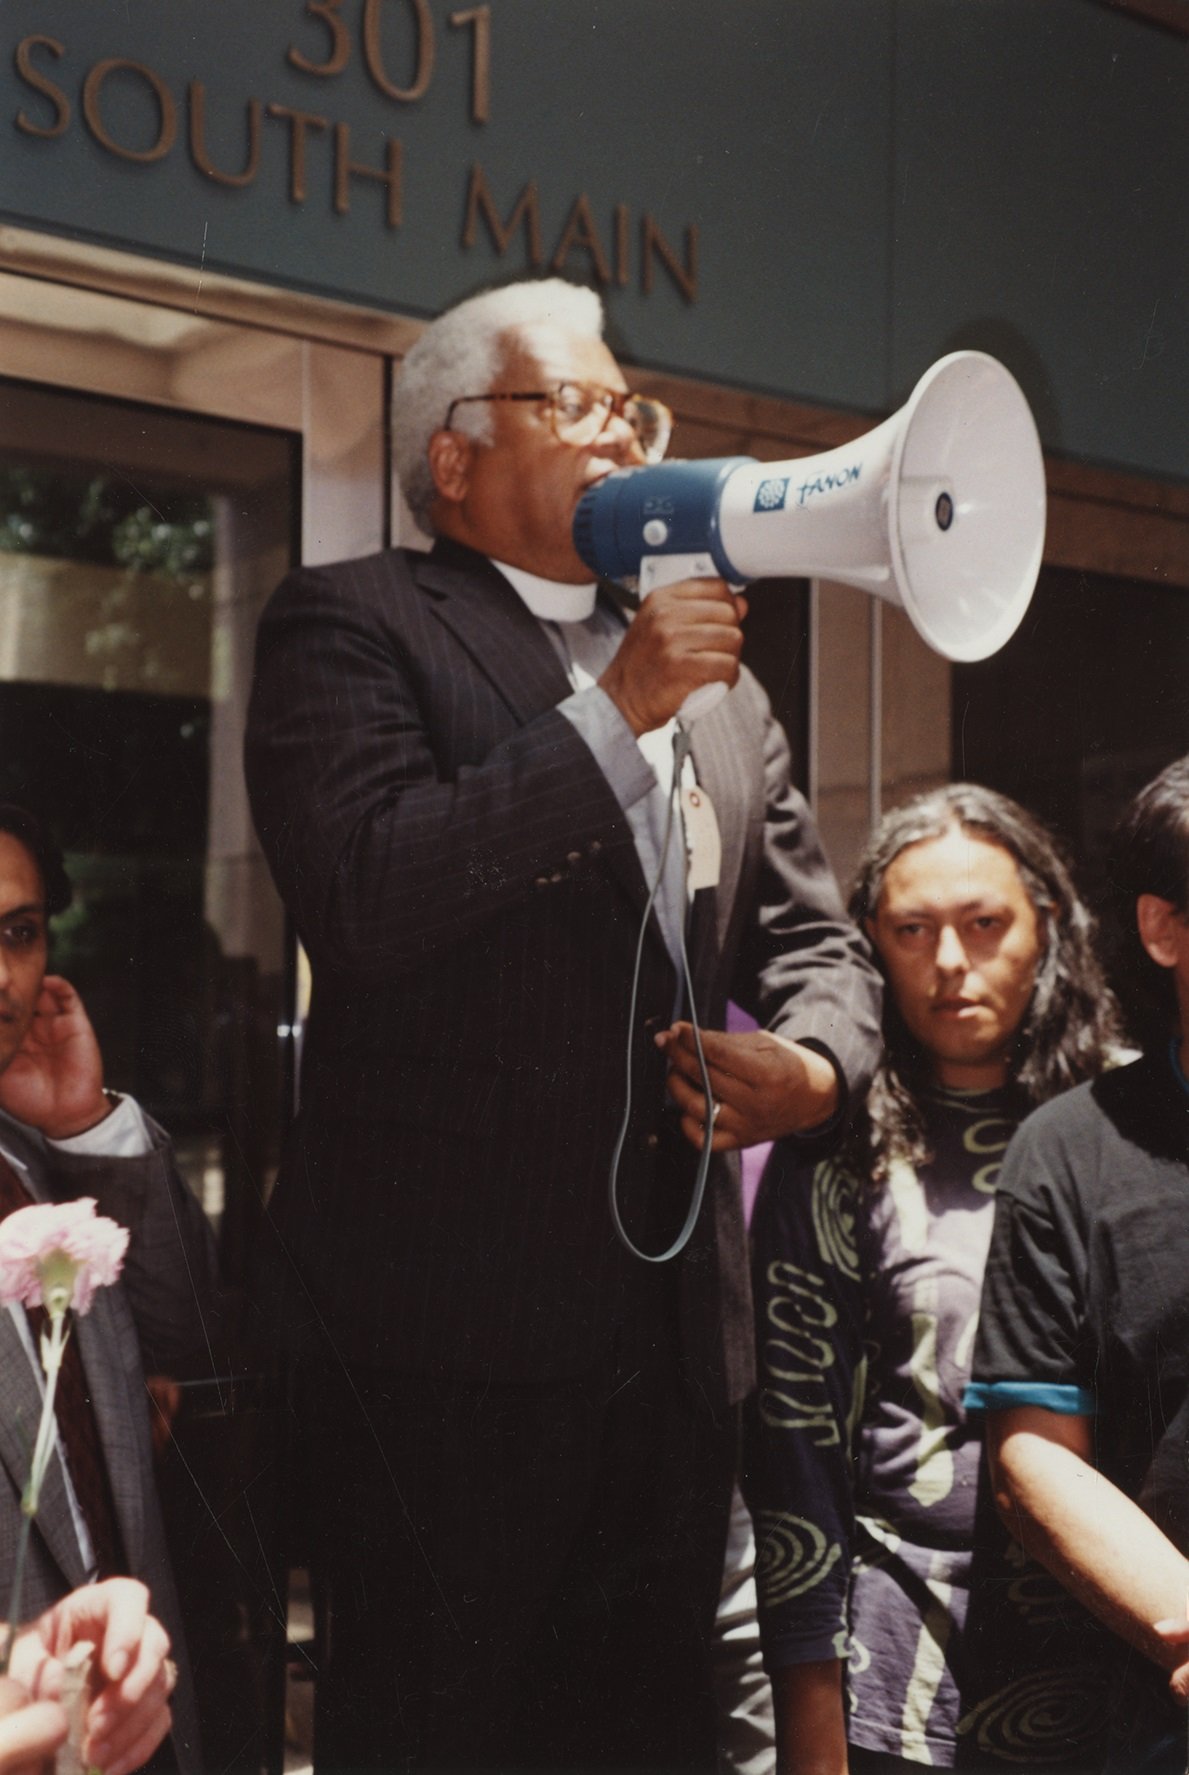 the Rev. James M. Lawson Jr. speaking to a crowd with a megaphone